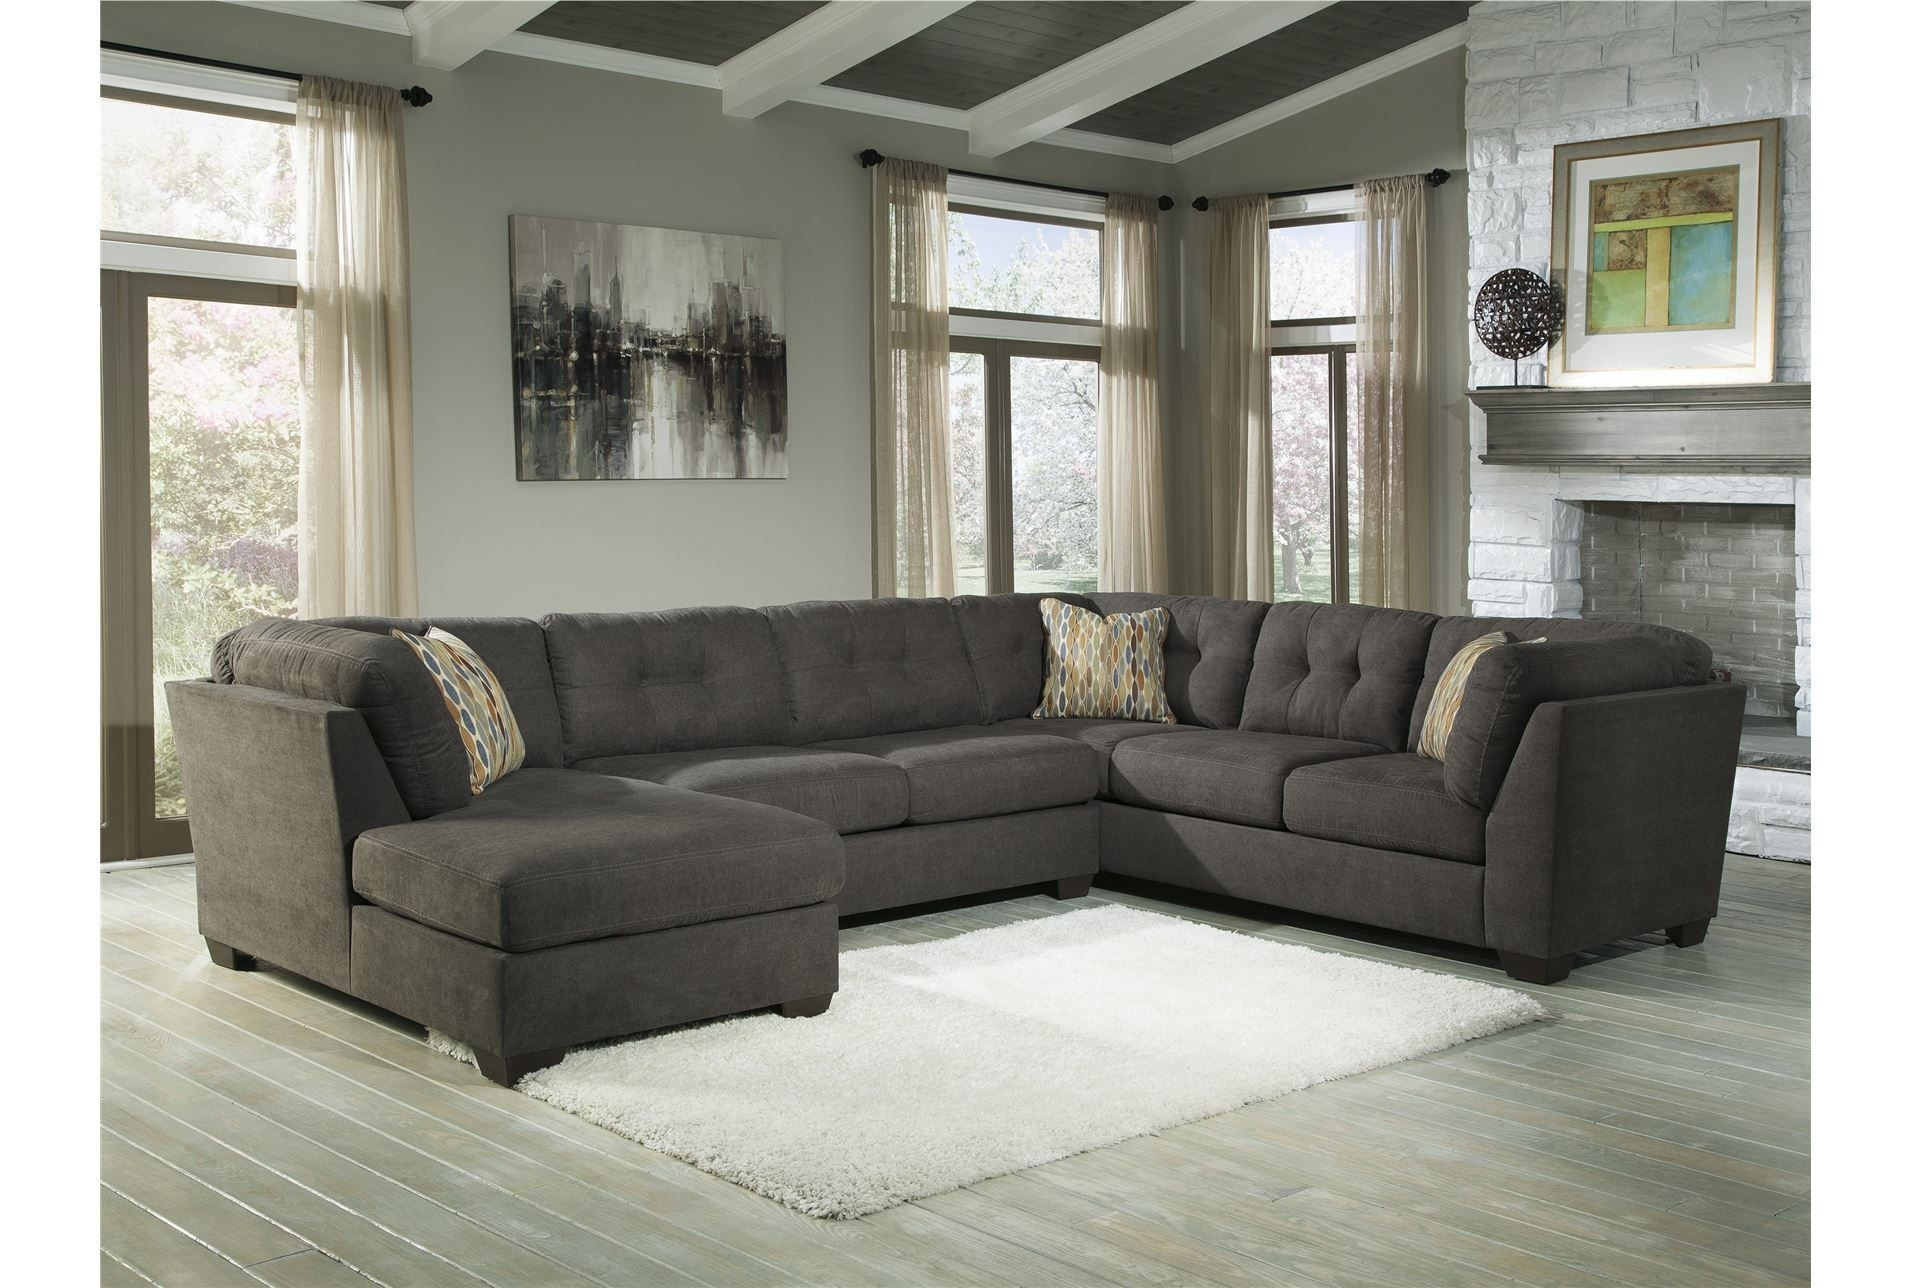 Location Chaise Option Pertaining To Norfolk Chocolate 3 Piece Sectionals With Laf Chaise (Image 13 of 25)